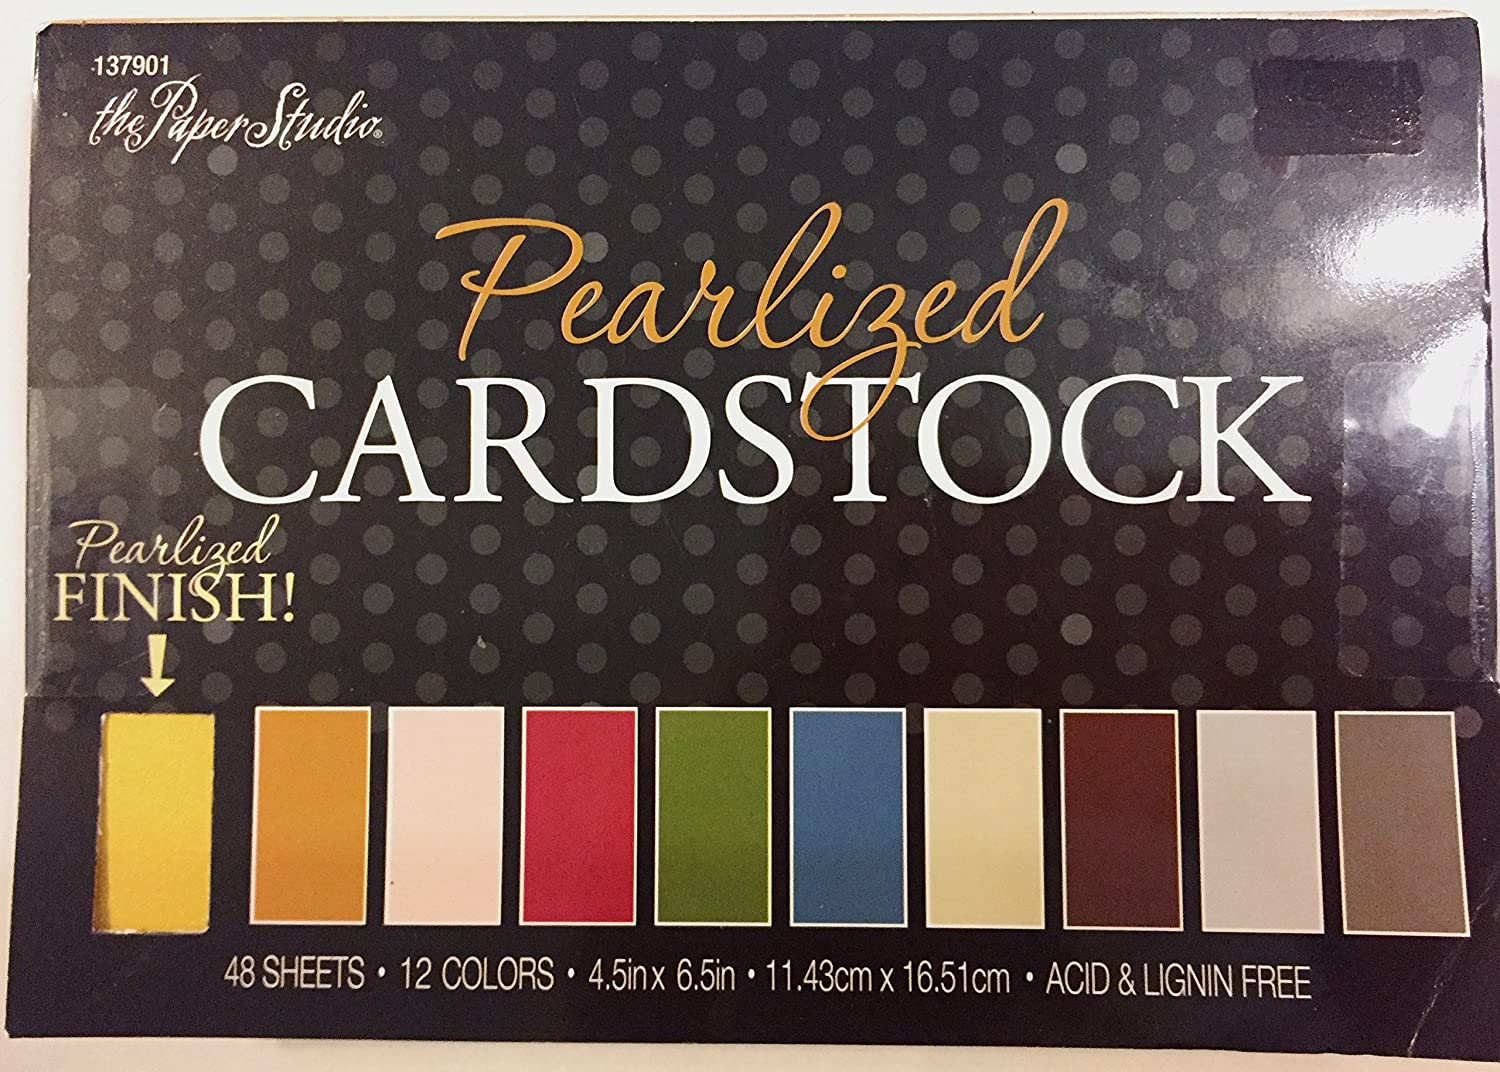 Pearlized Cardstock Paper Pack 4.5x6.5 inches, 48 Sheets in 12 Colors The Paper Studio 137901